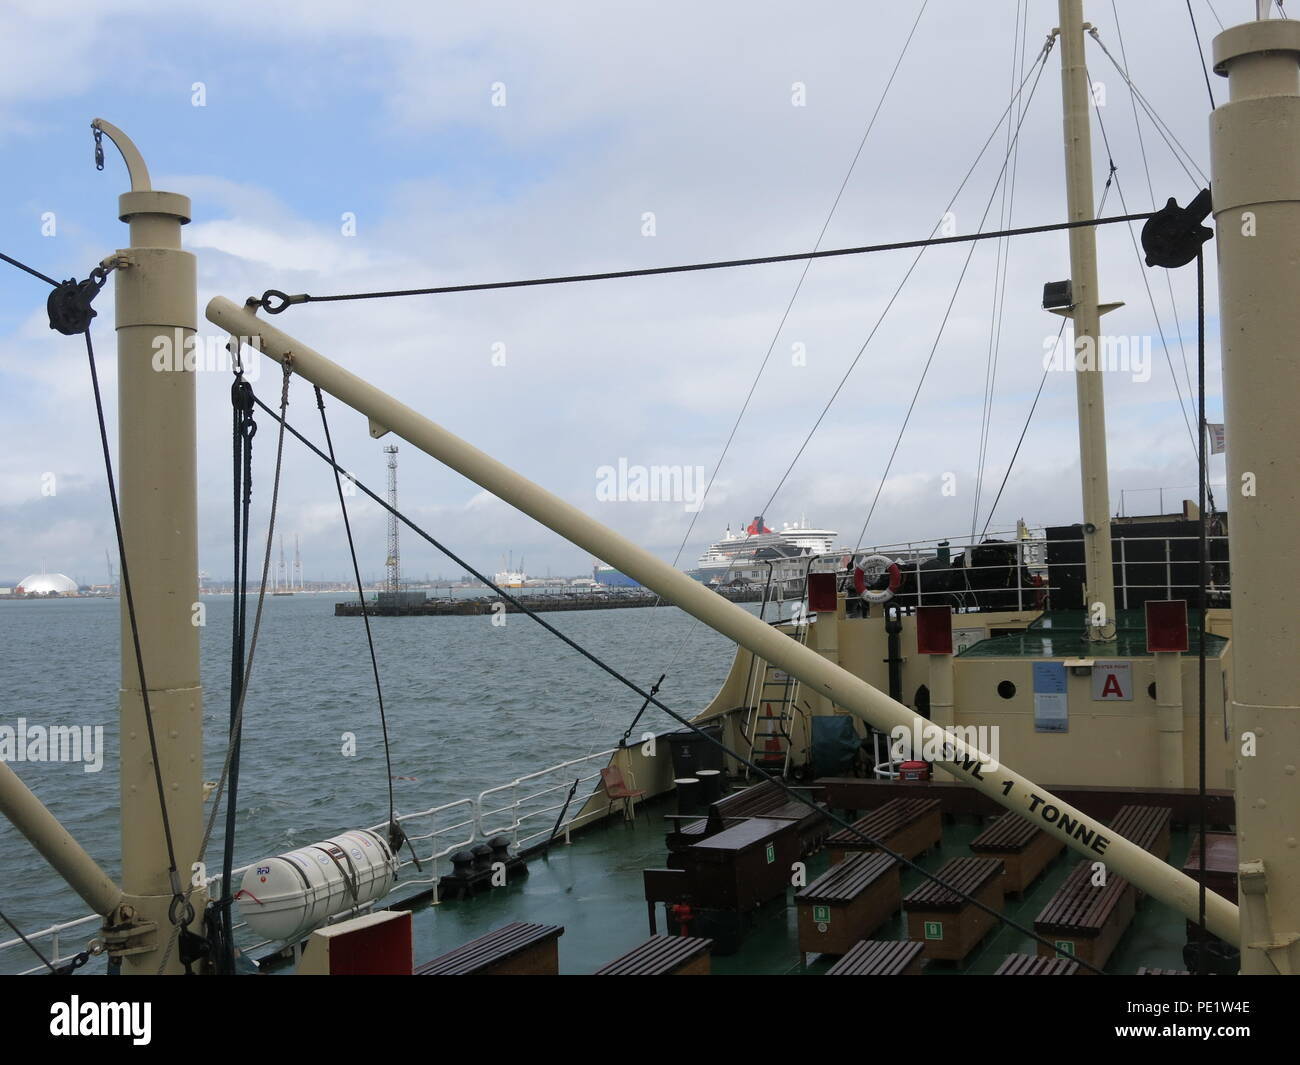 The SS Shieldhall on a lunchtime cruise in Southampton Waters; the largest working steam ship in Britain, preserved from operating on the Clyde. Stock Photo